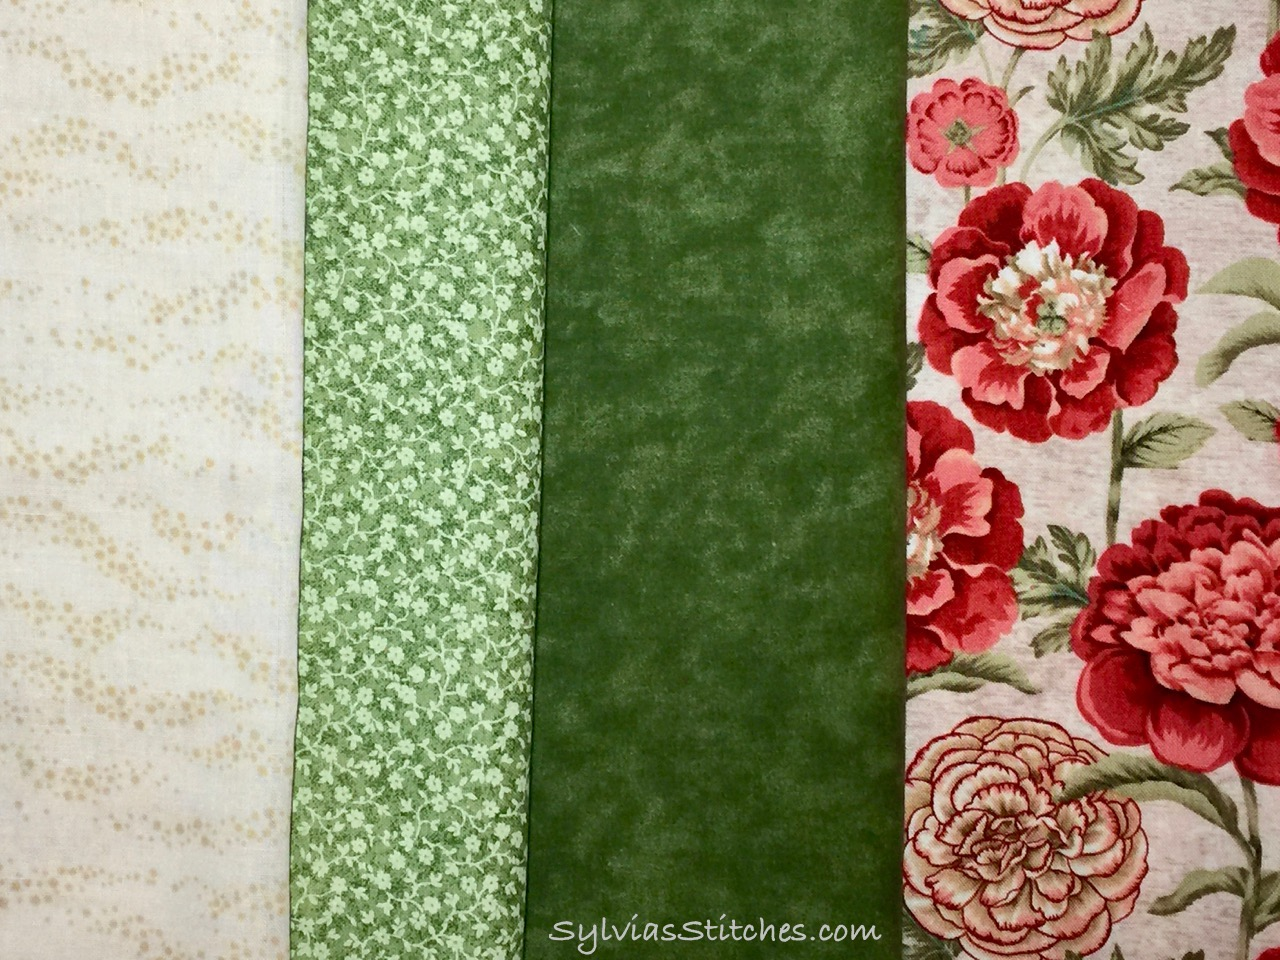 Spring Table Runner with IQ Designer - Sylvia's Stitches